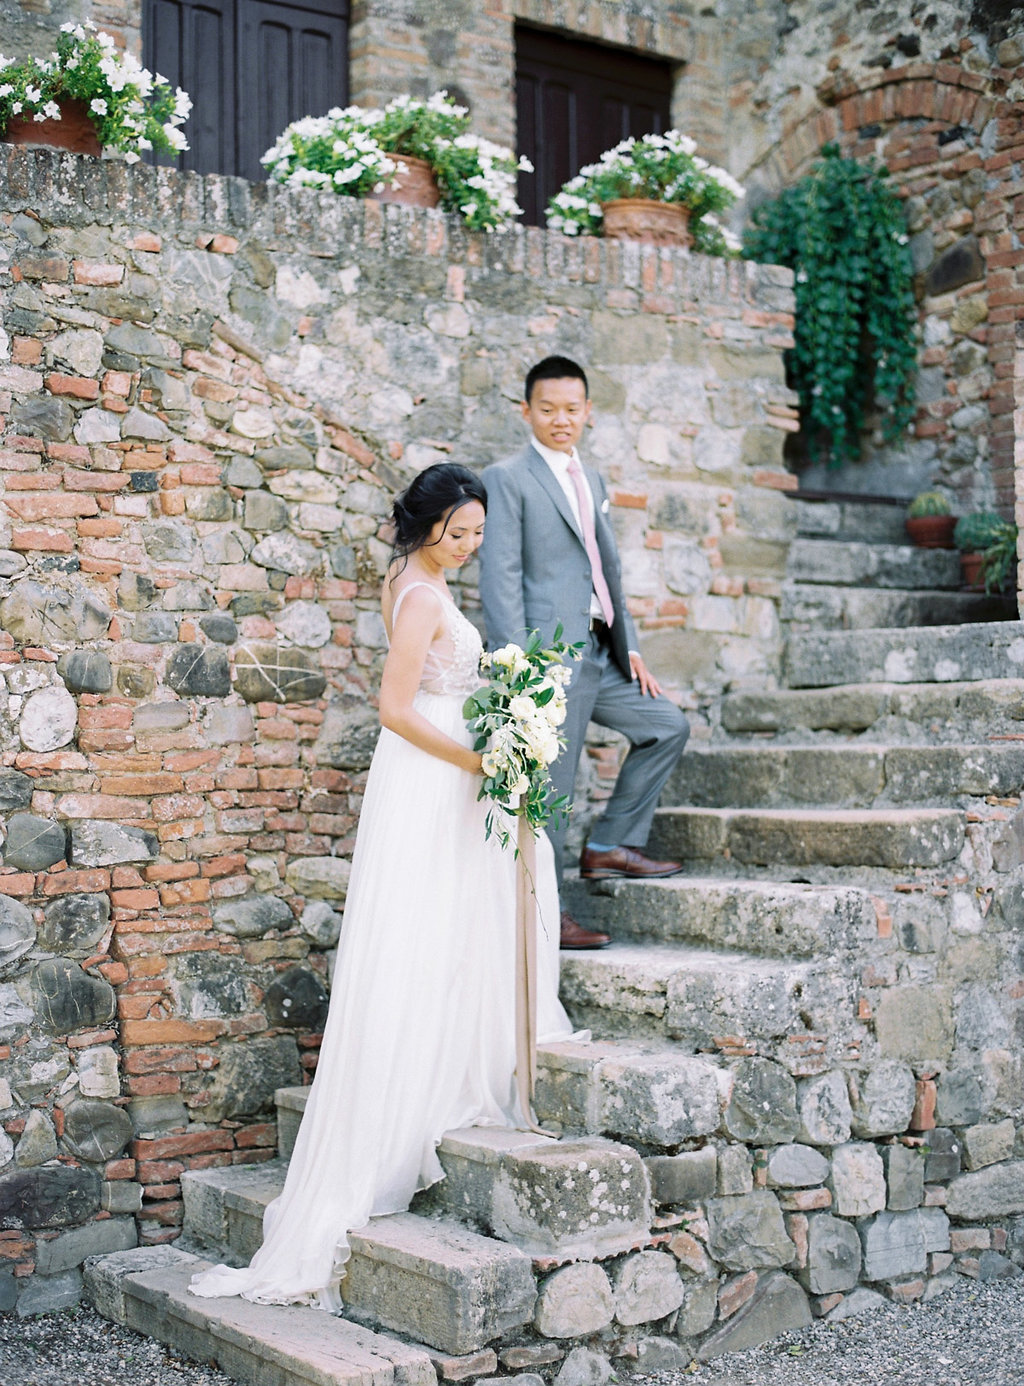 Classically Beautiful + Intimate Wedding in Tuscany - photo by Katie Grant Photography https://ruffledblog.com/classically-beautiful-intimate-wedding-in-tuscany